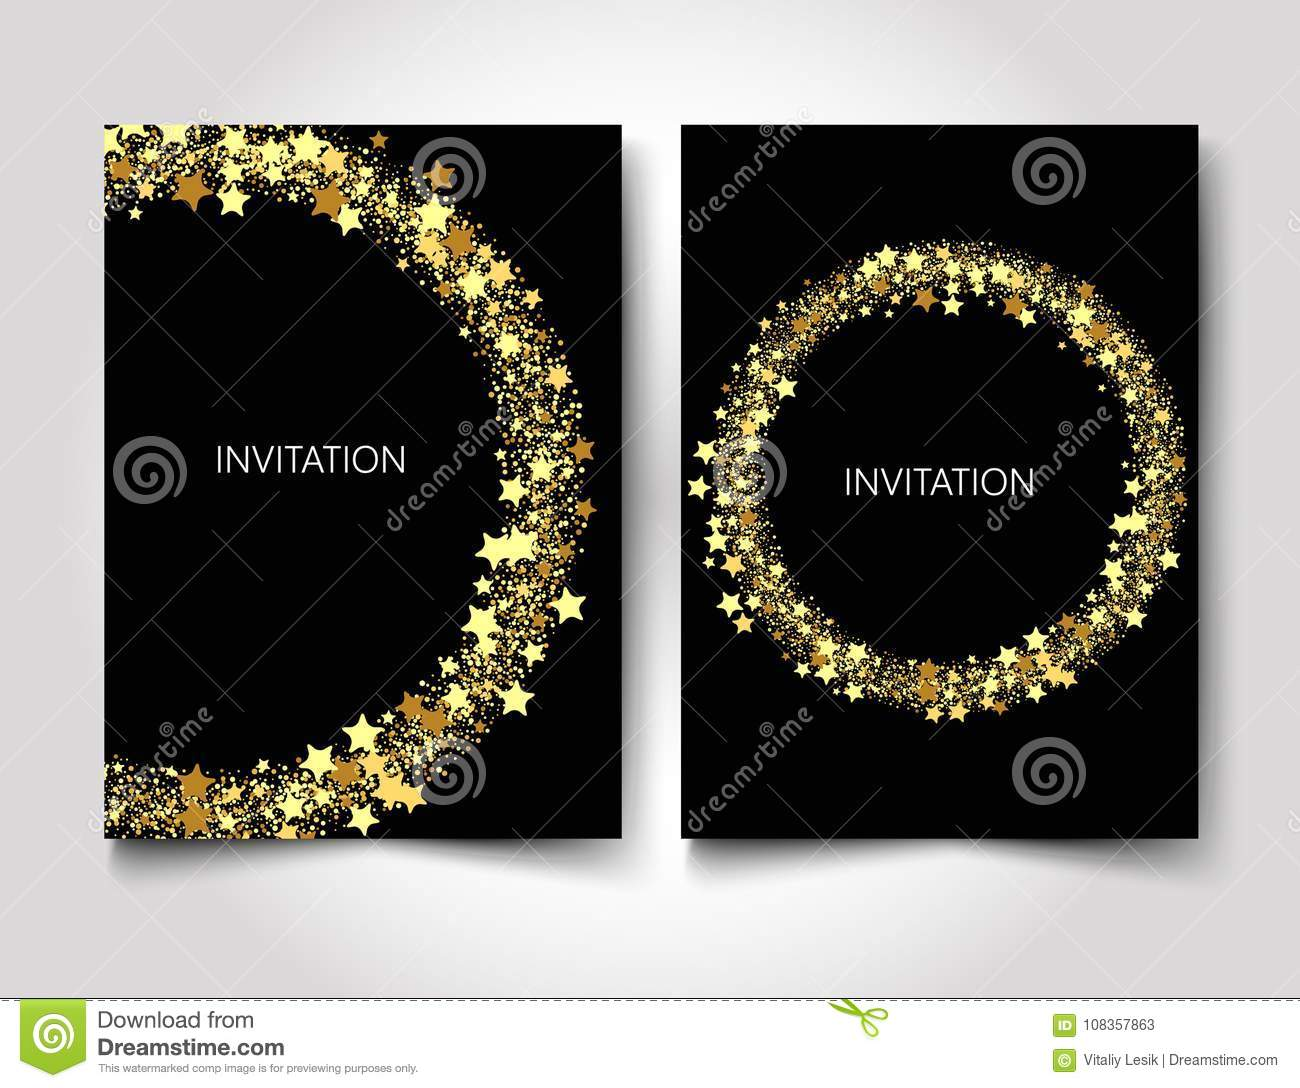 invitation template gold glitter with gold stars on a black